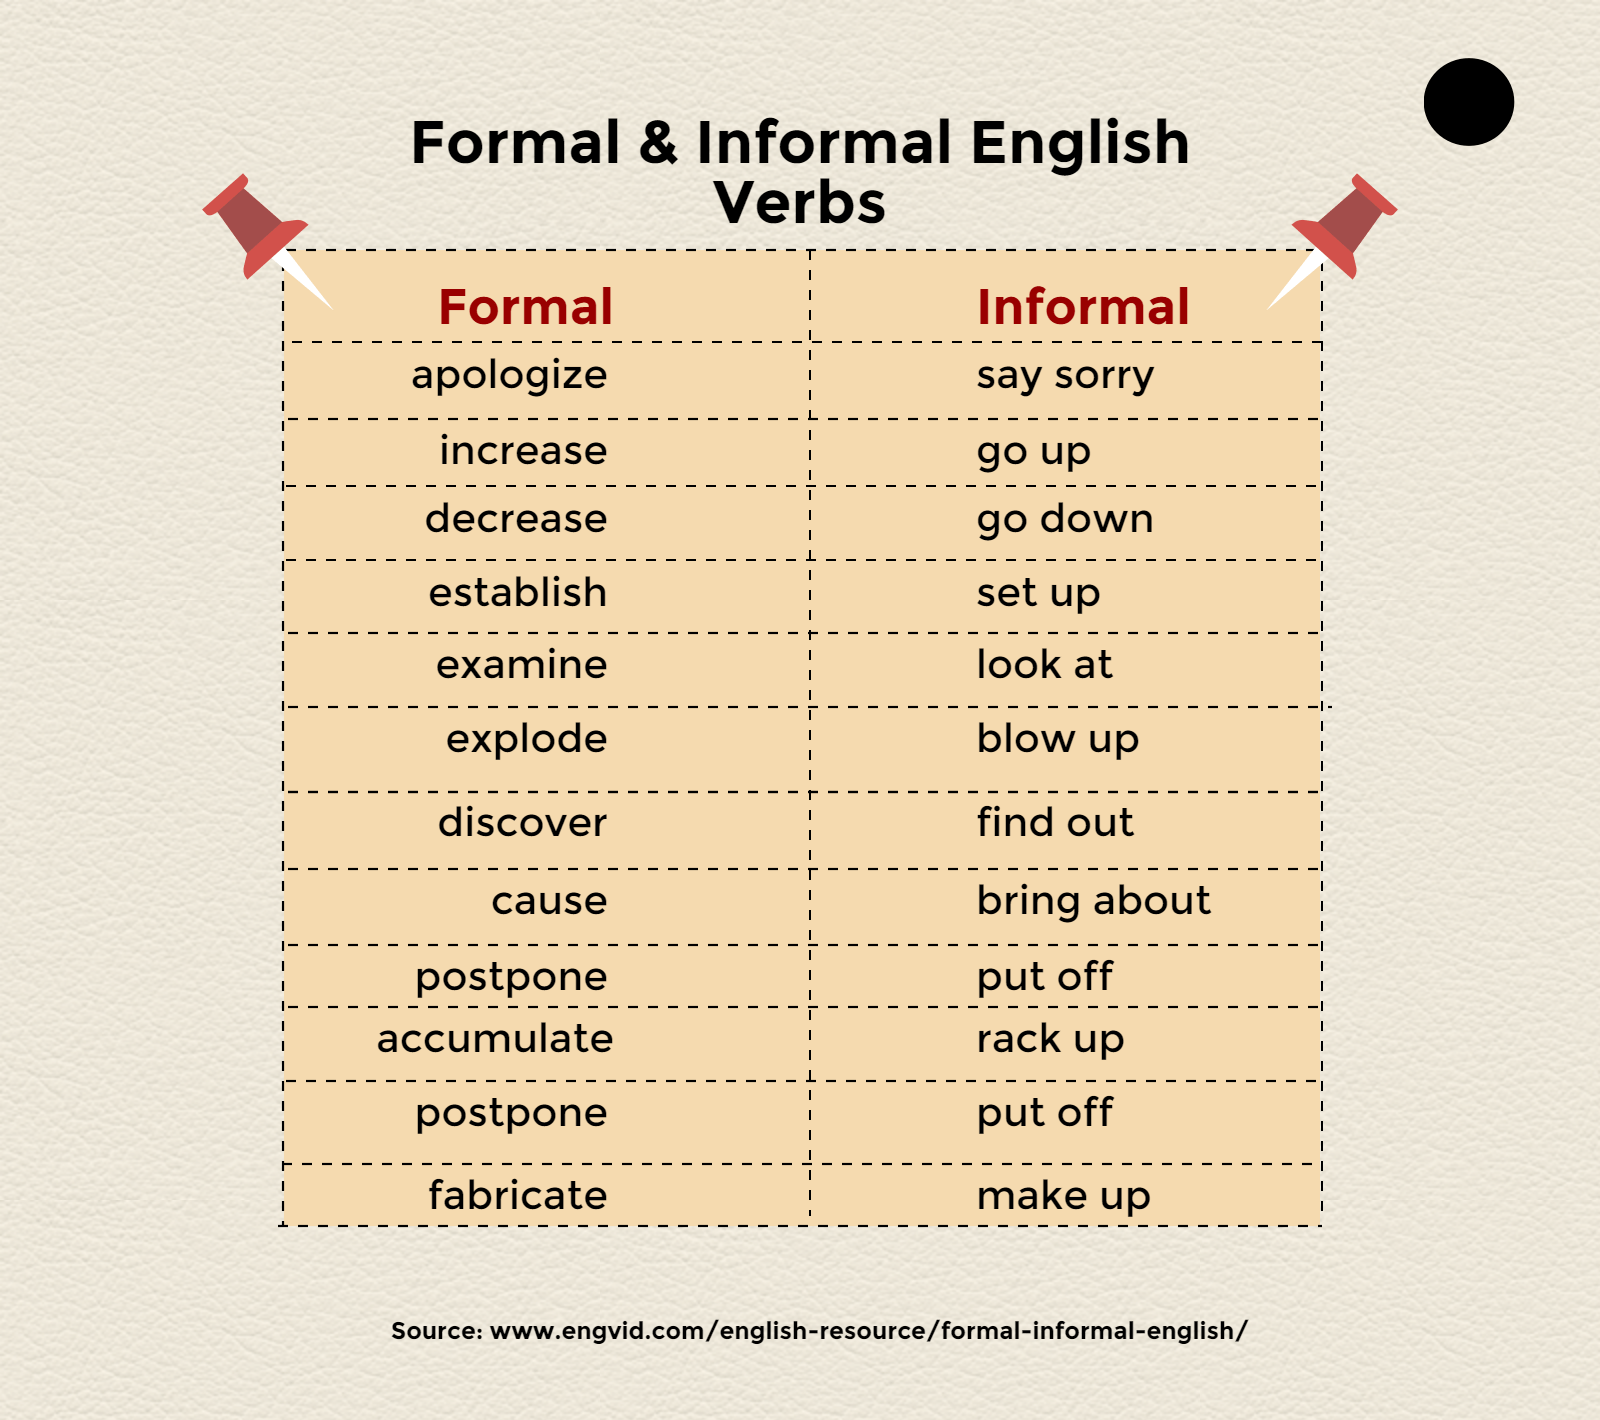 Formal & Informal English Verbs English Language, ESL